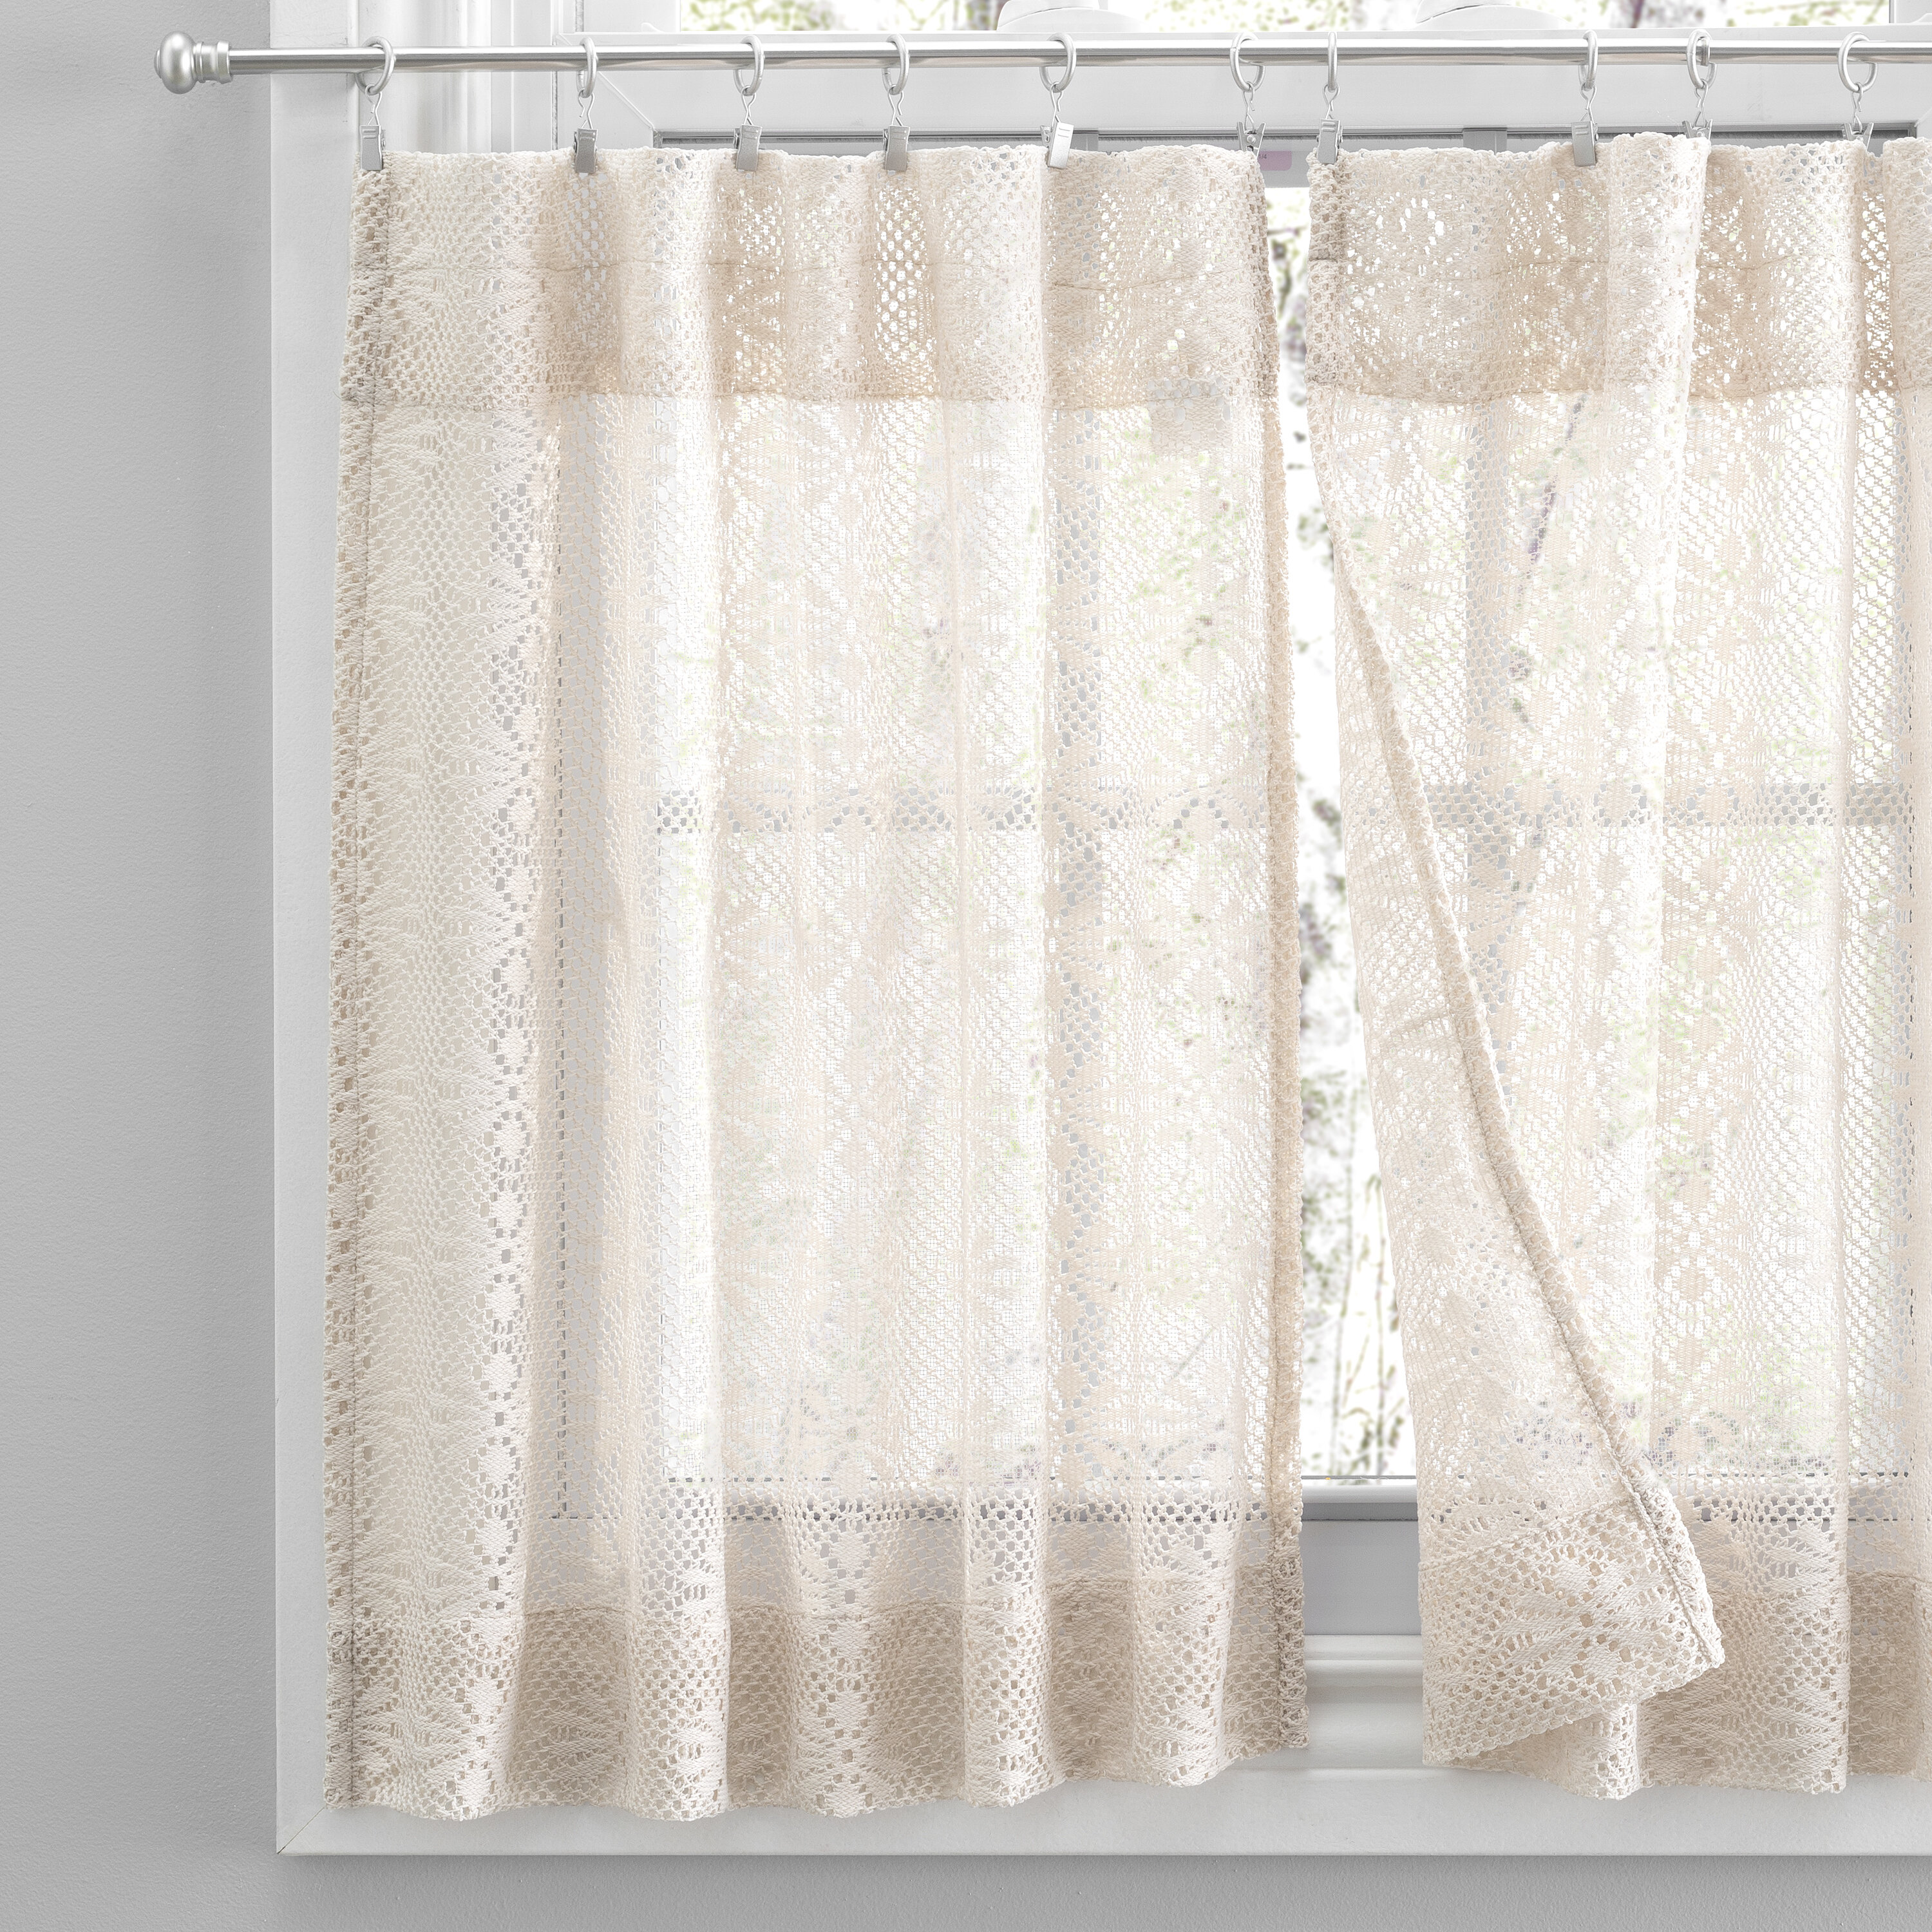 Hopewell Heavy White Lace Kitchen Curtain Home Room Decor 24 Cafe Tier Curtains Home Kitchen Home Decor